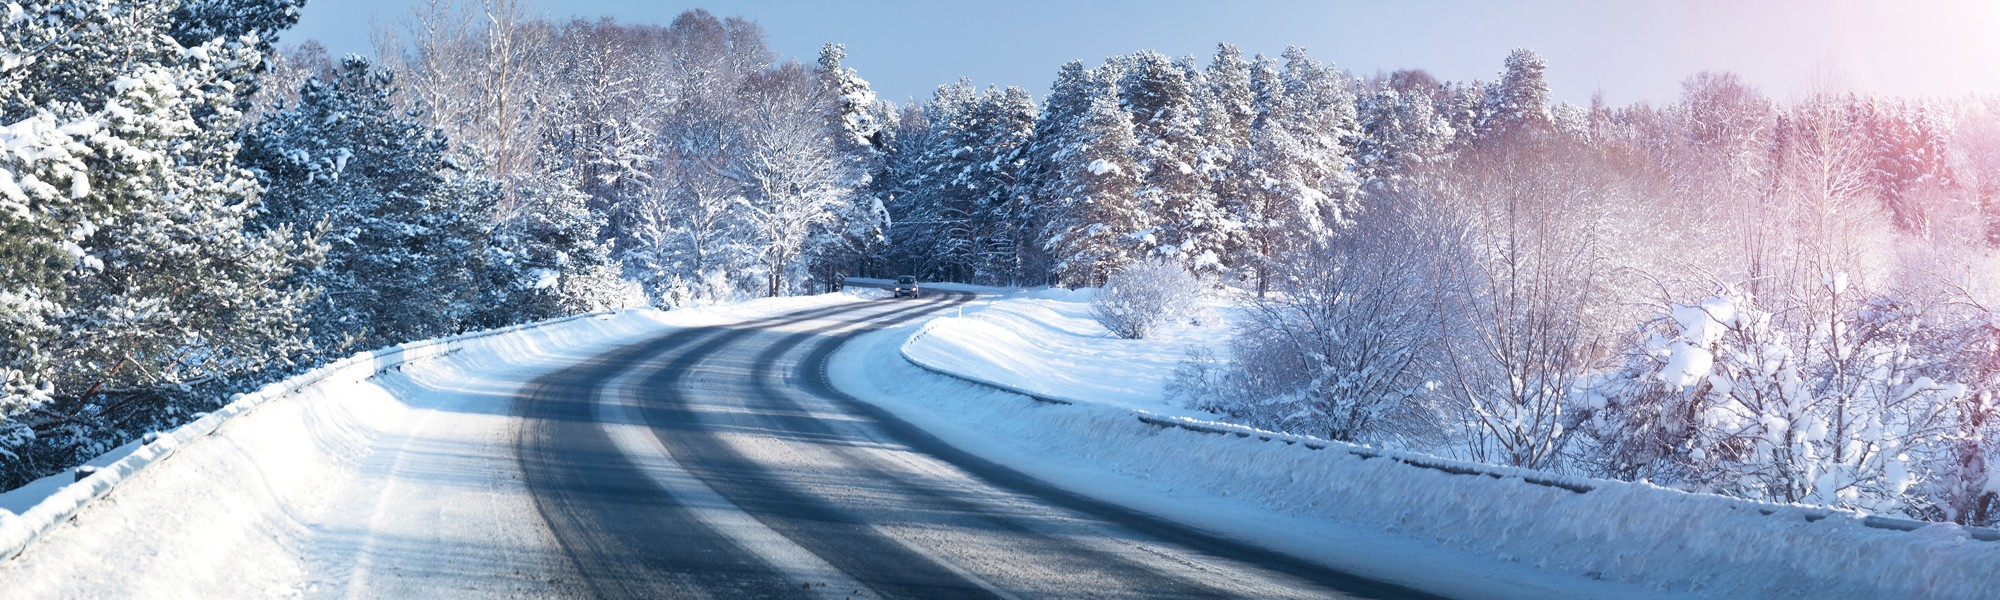 winter-road-page-banners-2000x600.